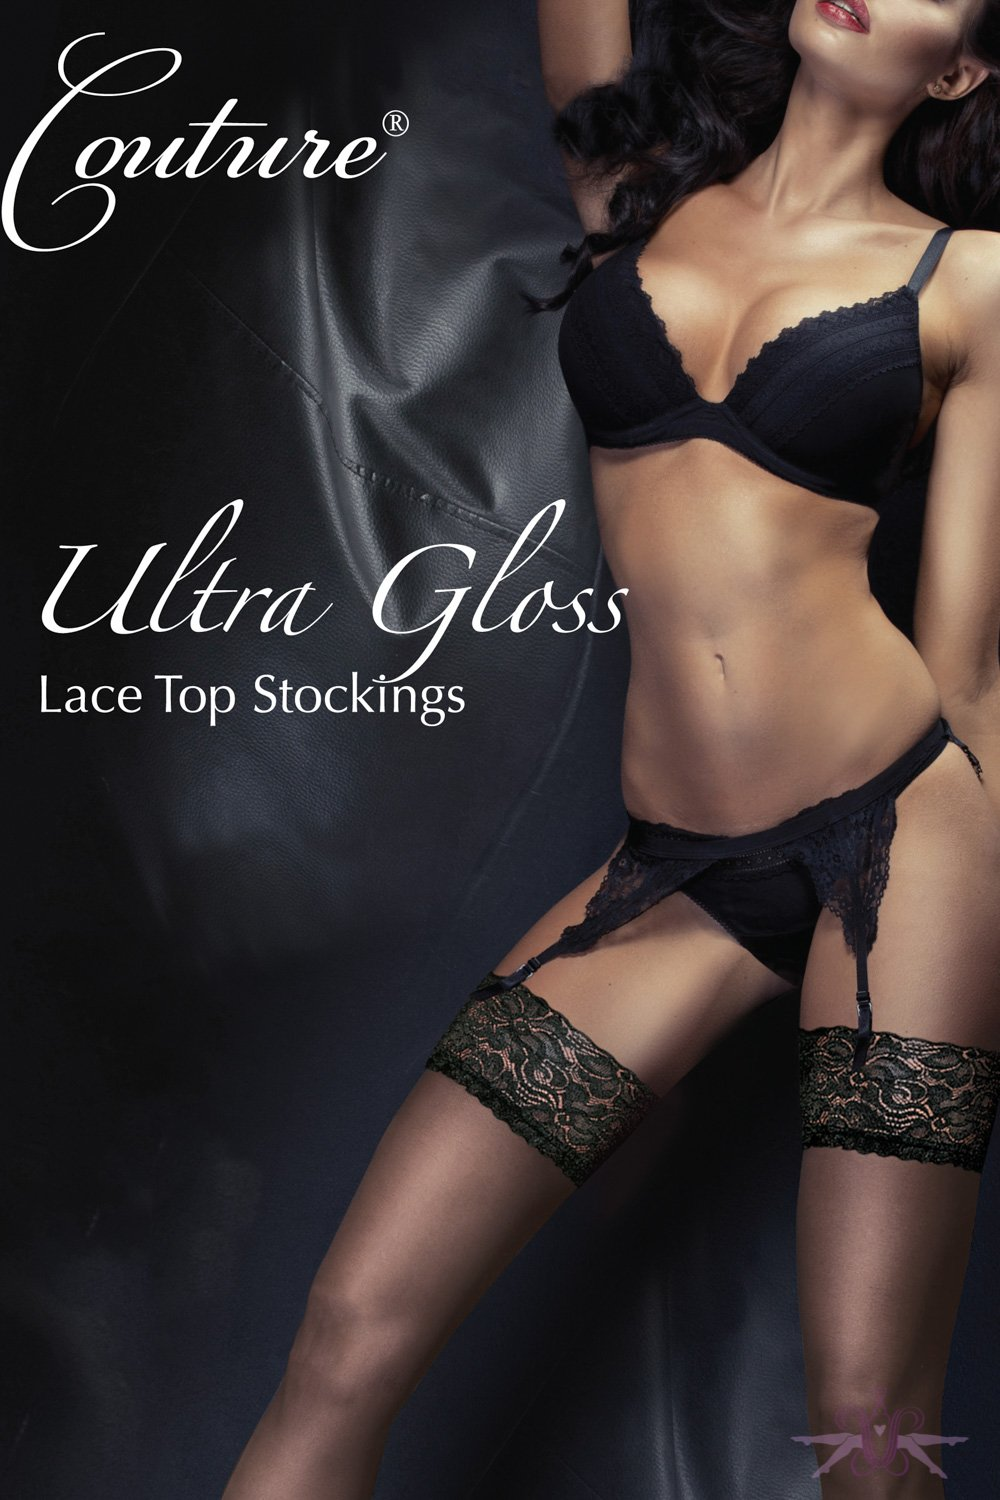 Couture Ultra Gloss Lace Stockings